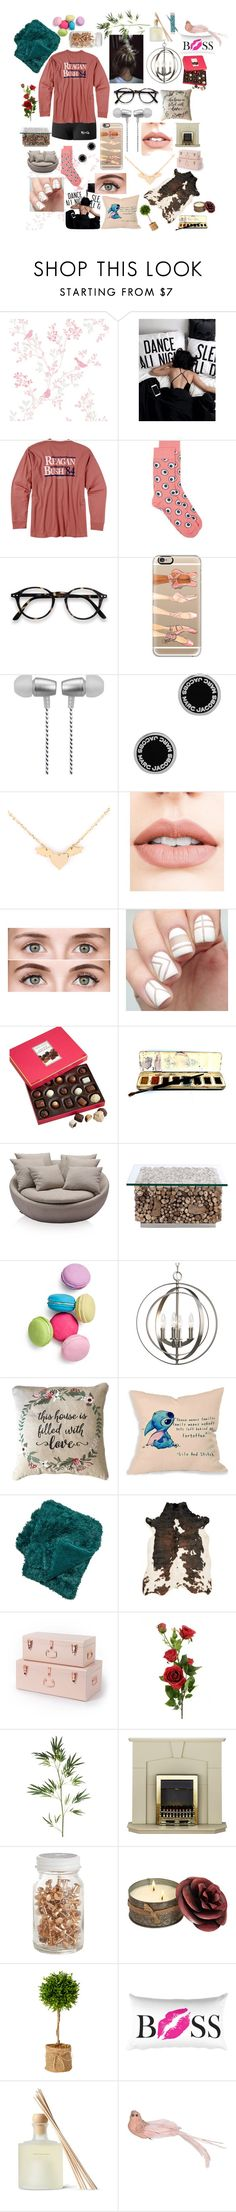 """""""Becoming Friends"""" by meisnatalia ❤ liked on Polyvore featuring Rowdy Gentleman, Casetify, Cynthia Rowley, Marc Jacobs, Jouer, Clarins, Harry London, Two's Company, Disney and Pier 1 Imports"""